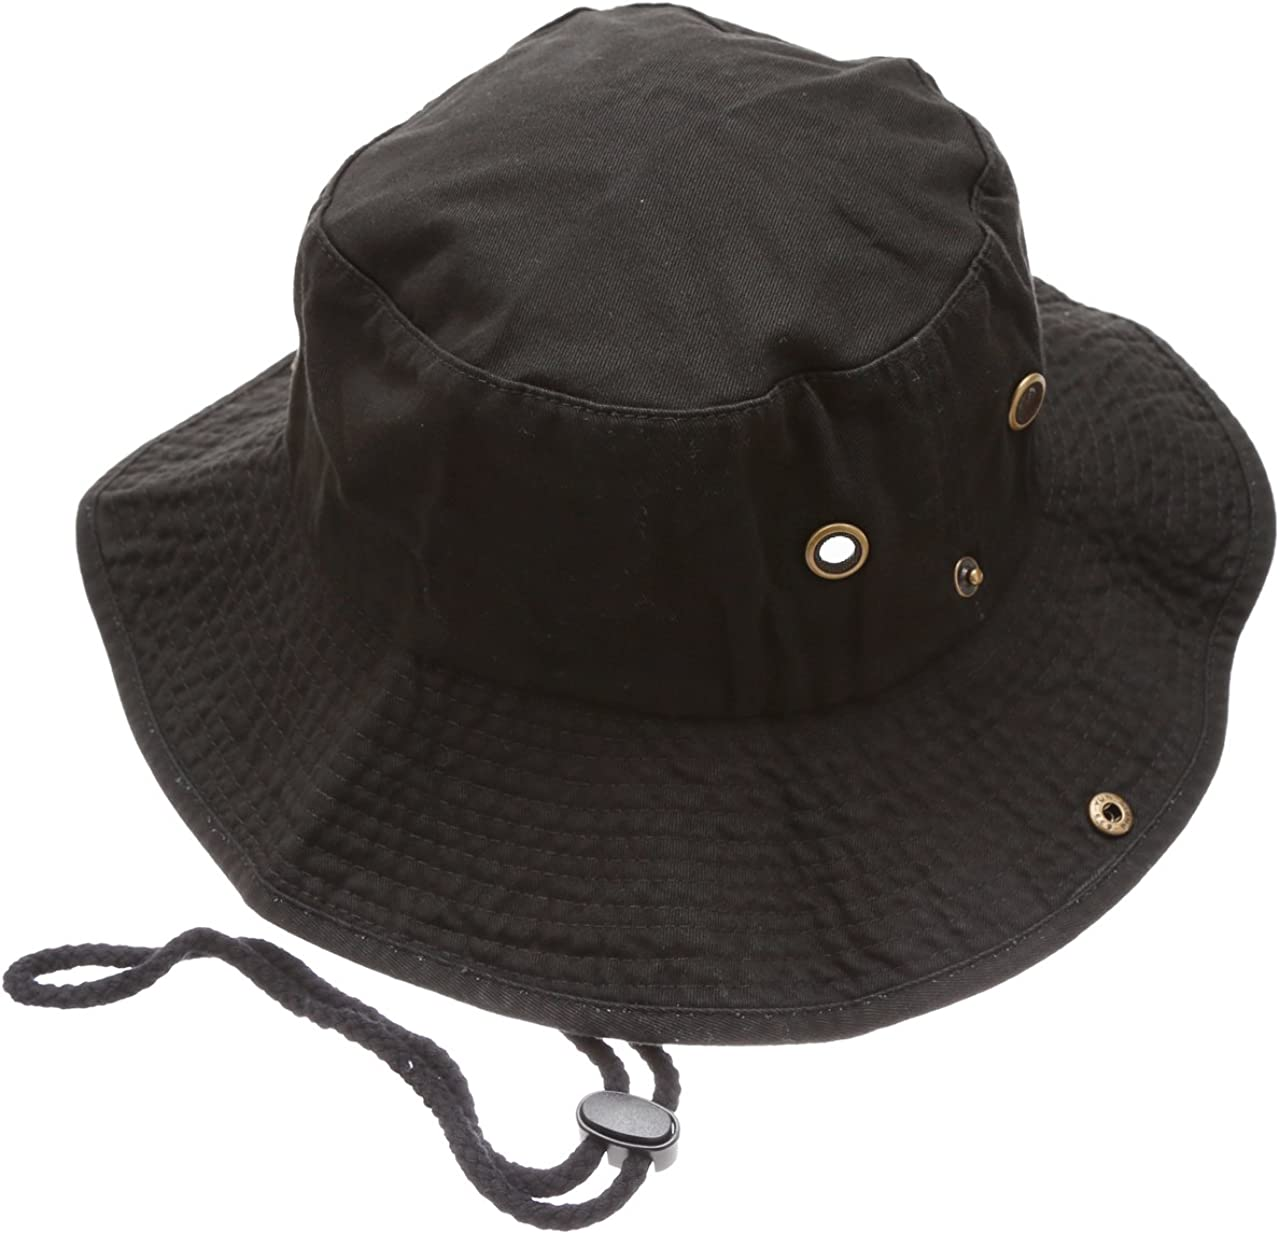 Large A-TWO Golden Tiger Stripe Unisex Fishing Hunting Bucket Boonie Hat|